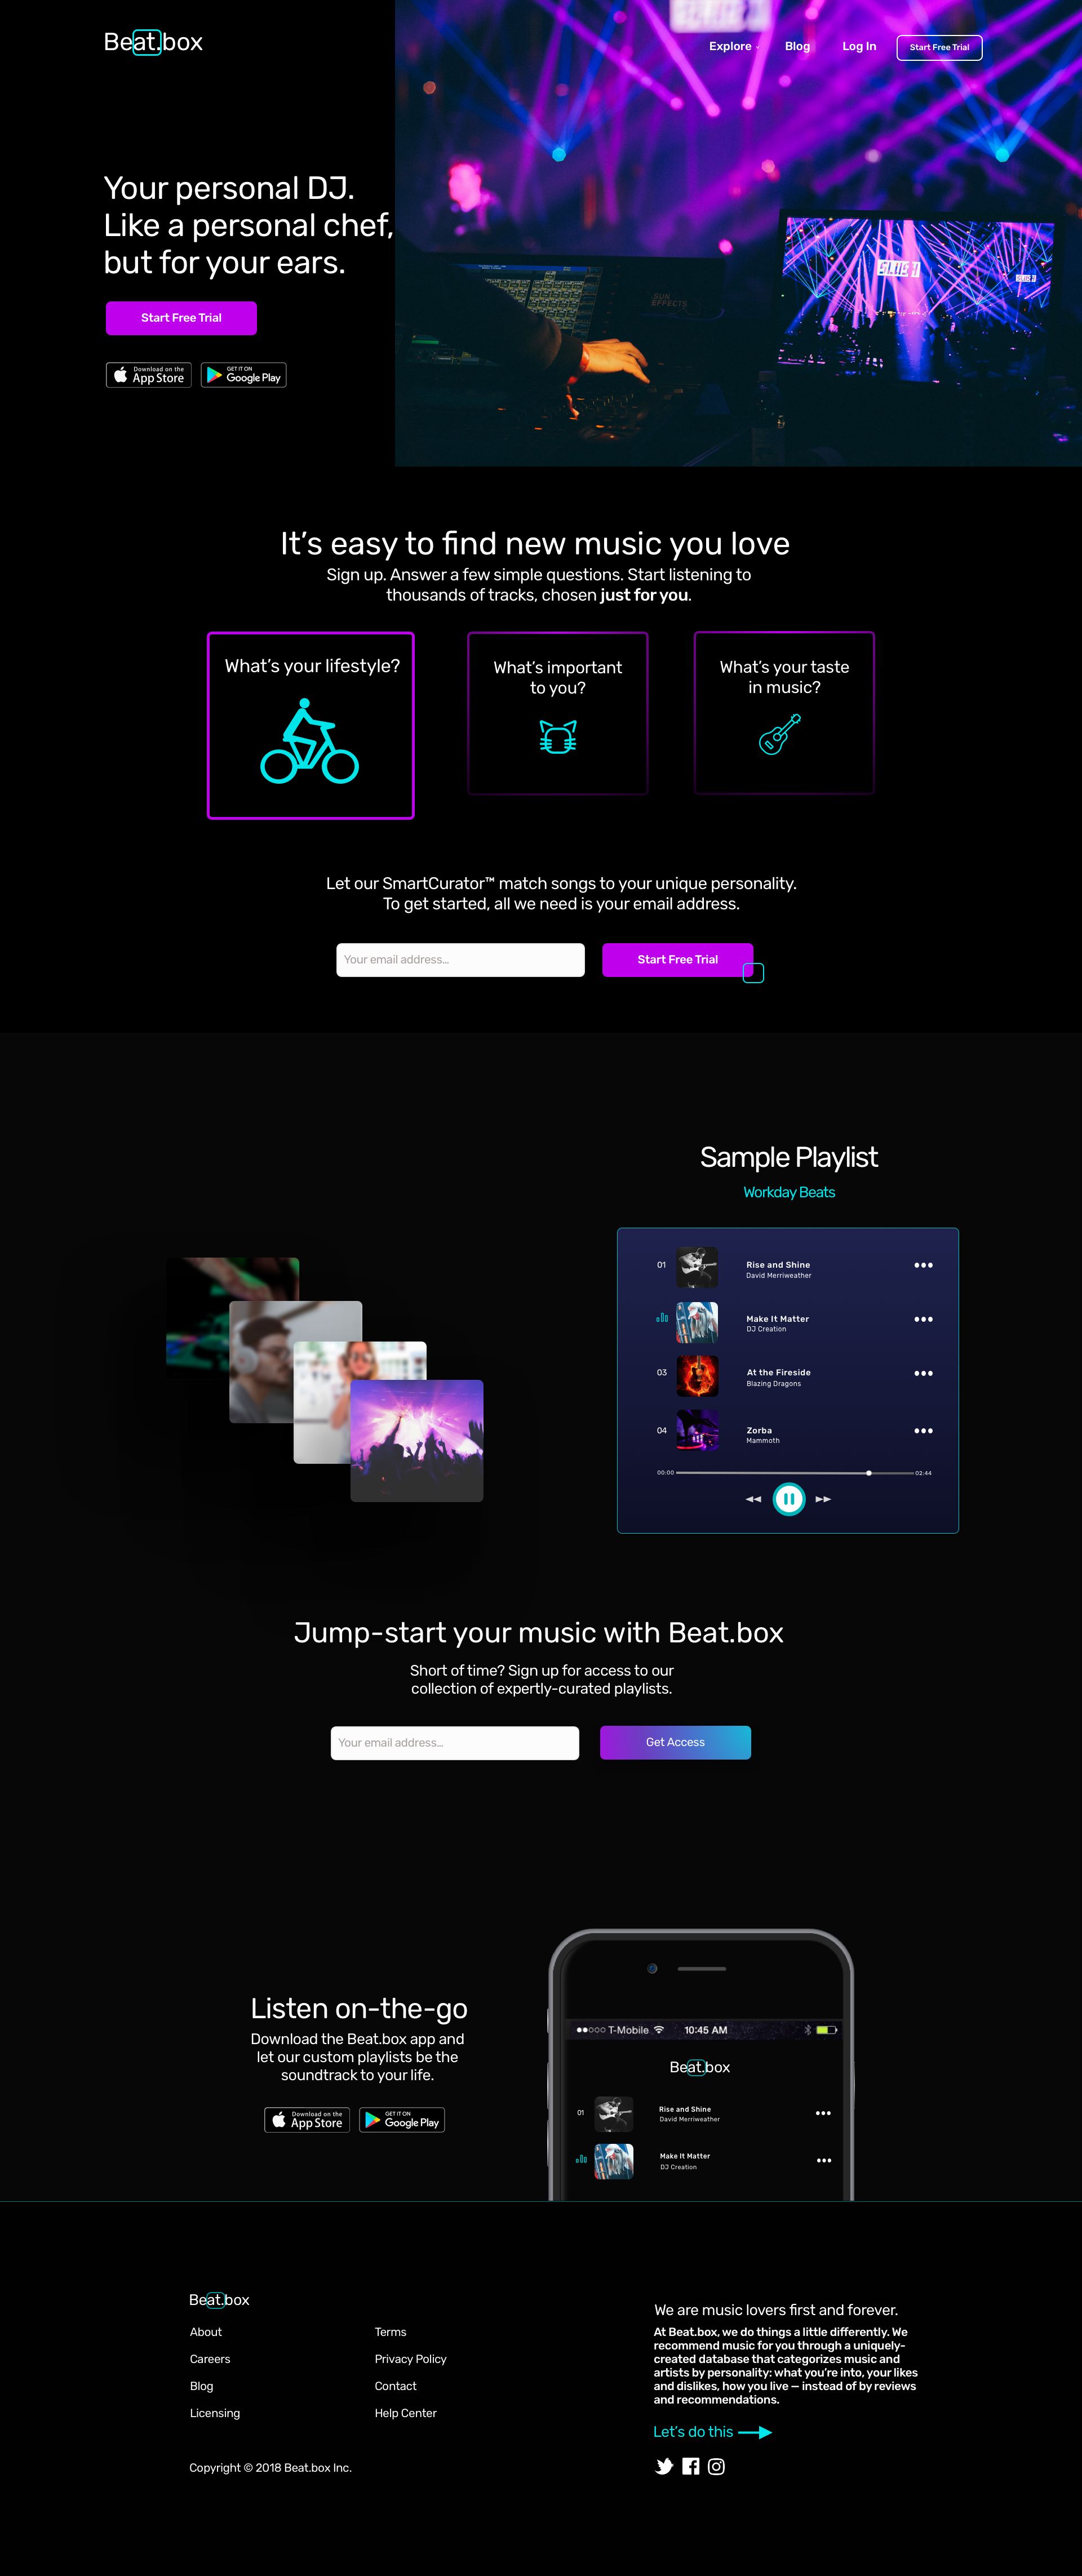 """I created this landing page for a hypothetical company, Beat.box, as the final project for a Visual Design course I took through General Assembly. - The Creative BriefThe task was to create a homepage for a music streaming website to rival Pandora, Tidal, and Spotify. Beat.box's unique selling point is its sophisticated song recommendation engine, which is powered by AI and big data rather than humans. It aims to serve up highly customized song selections from an extensive music database. The user must answer some questions about their preferences in order to set up a profile with which song choices are matched.The Target AudienceThis company is primarily looking to attract young men aged between 18-25, both college students and young professionals. The secondary audience is women aged 18-35.For the first group, a personalized service and the latest music would be priorities. The second group would care more about ease-of-use, and would likely tap into pre-curated playlists rather than setting up a detailed profile.I pulled keywords from the brief that Beat.box wanted to associate with its brand—unique, unexpected, modern, accessible, young, tailored, knowledgable—and used those as a launching point.The ProcessThis project made me realize how interesting I find the psychological effects of typography and color. I constructed a mood board including palettes inspired by images of live concerts, and was guided by our instructor to choose the most visually striking of these as it would resonate with the audience. I opted for flashes of bright color (pink, turquoise, blue) against an otherwise monochrome background. I chose a sans serif font, Rubik, which was crisp and modern but had enough curves to feel friendly.The goal of the landing page is to get a visitor to the site to sign up for a free trial. I designed two """"ways in"""". The first is represented by the prominent calls to action in the navigation, next to the hero image, and in the first content block, which shows """